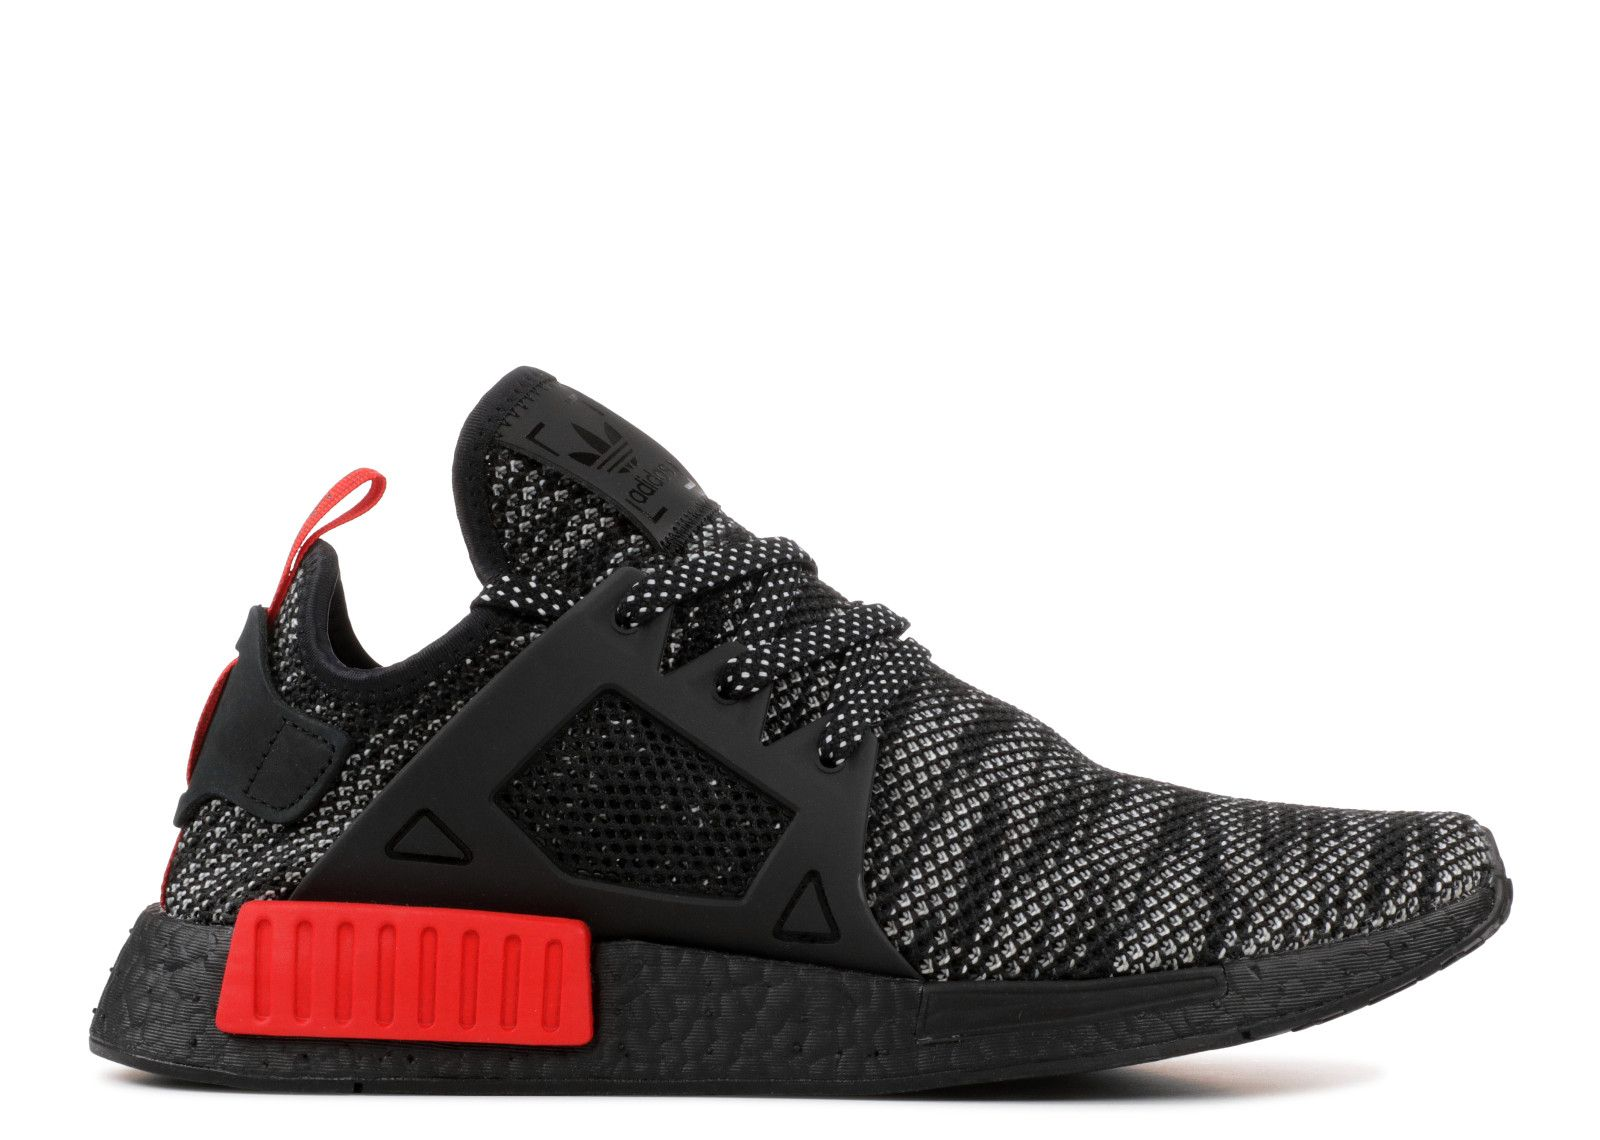 1a68b5056 2017-2018 New Arrival NMD XR1 BRED black red s76849